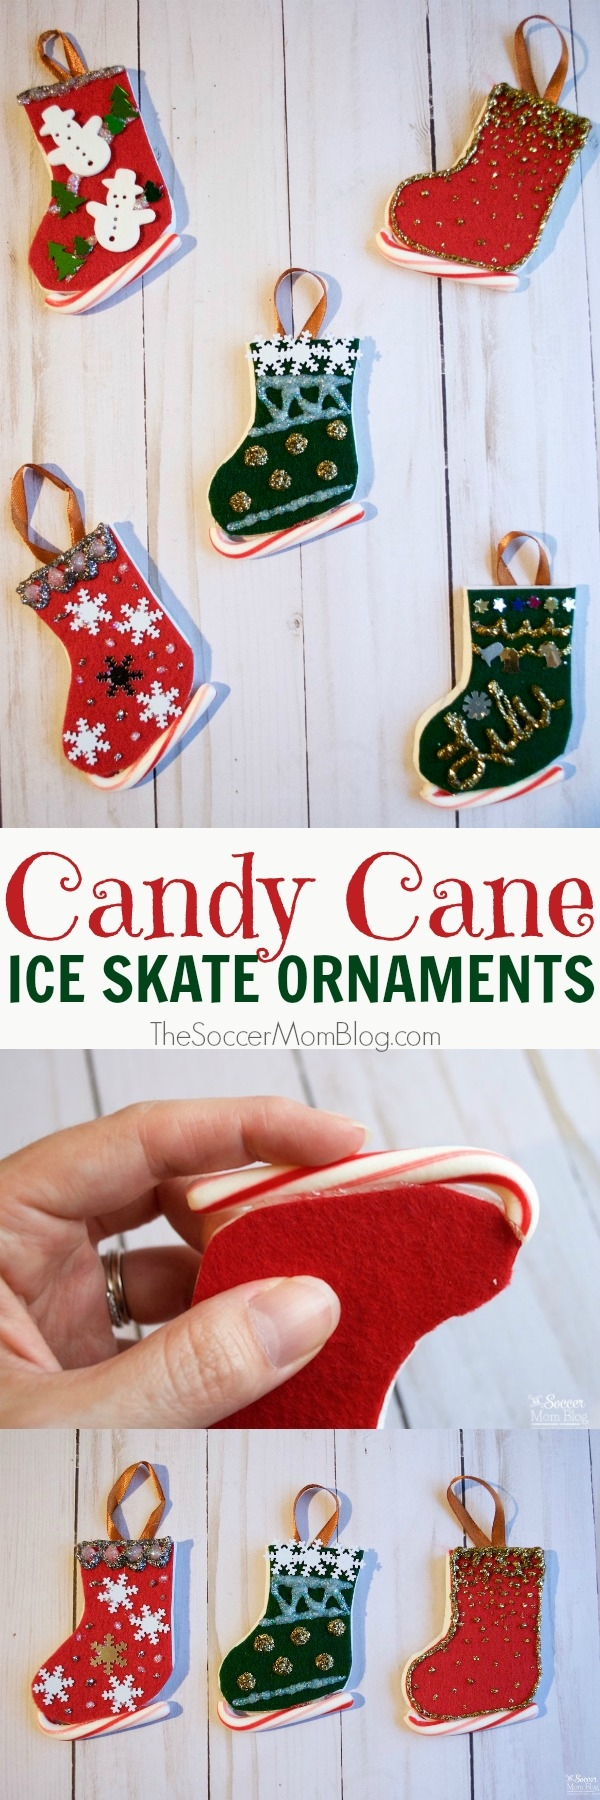 candy-cane-ice-skate-ornaments-pin